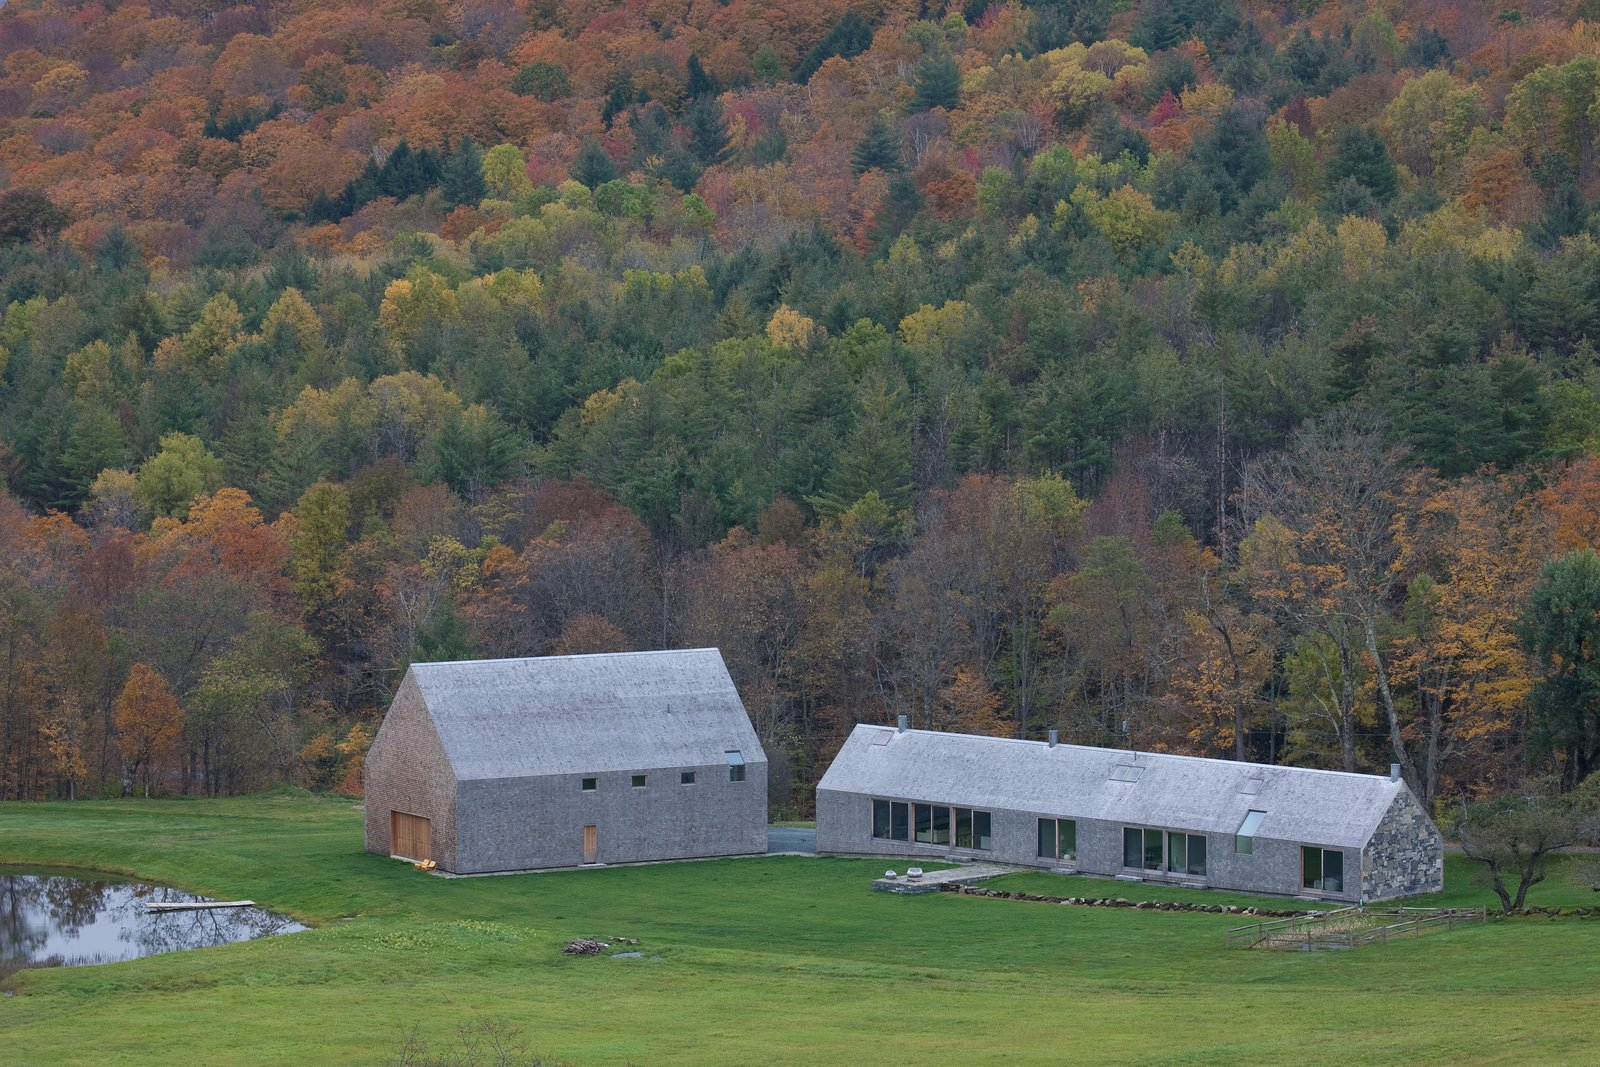 Exterior, Gable, Stone, Barn, Farmhouse, Shingles, Wood, and House The home is naturally integrated into its bucolic setting.  Best Exterior Wood Farmhouse Photos from A Minimalist, Rick Joy–Designed Farmhouse in Vermont Asks $9.25M